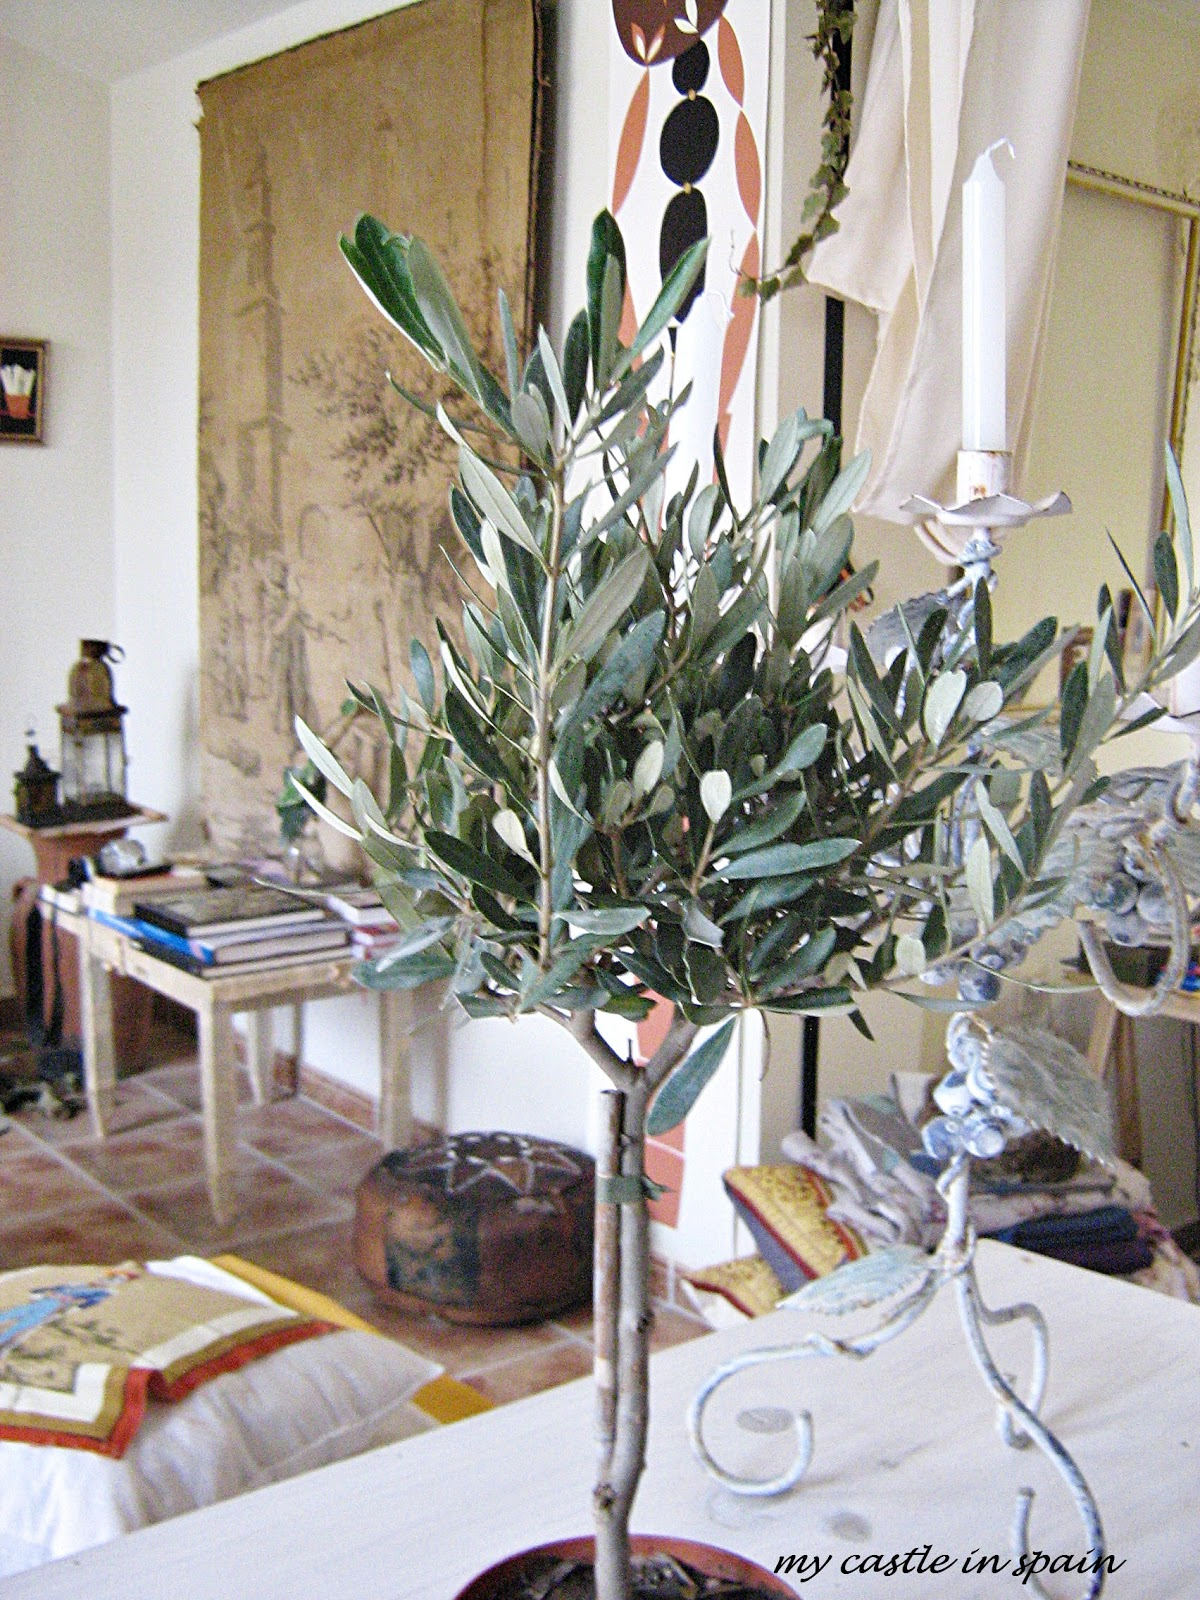 I Bought This Cute Minature Olive Tree Morning To Decorate My Christmas Table